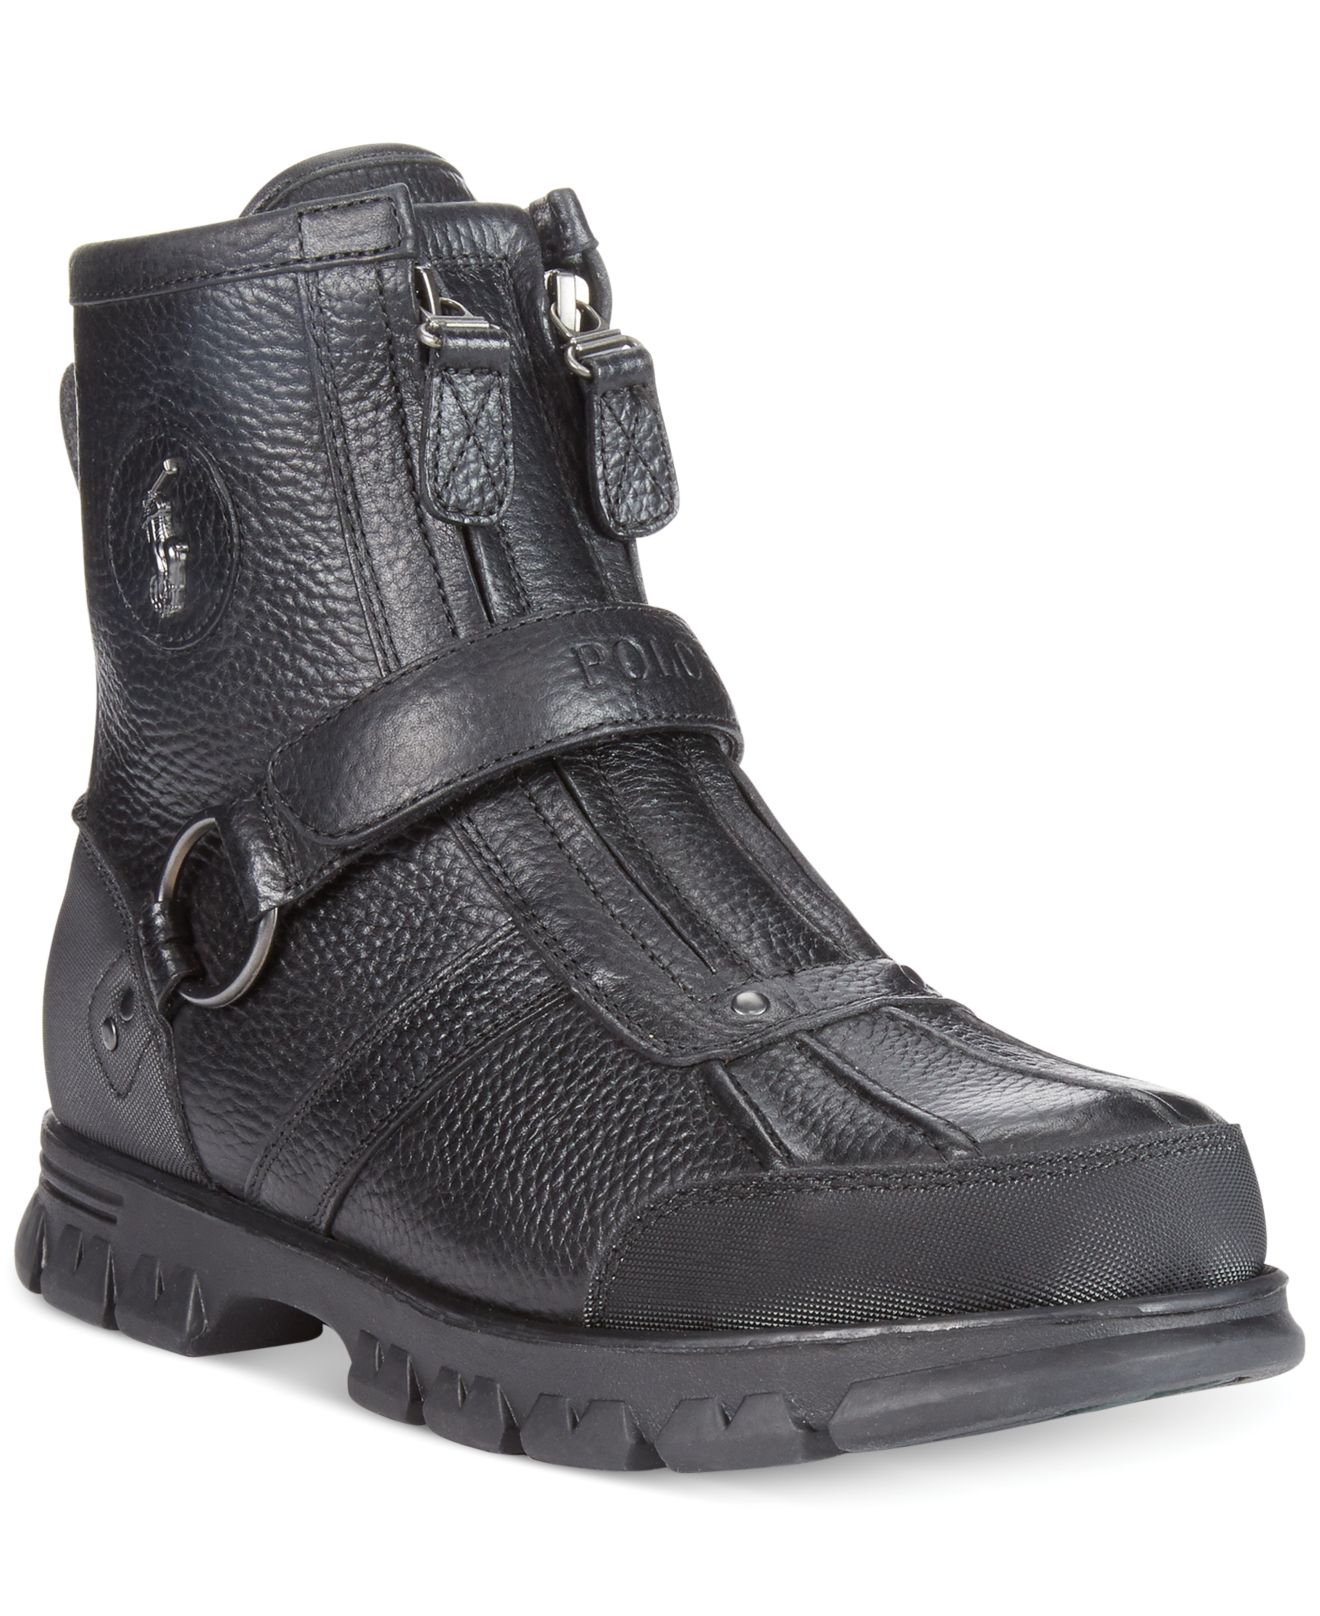 polo ralph lauren conquest iii high duck boots in black for men lyst. Black Bedroom Furniture Sets. Home Design Ideas